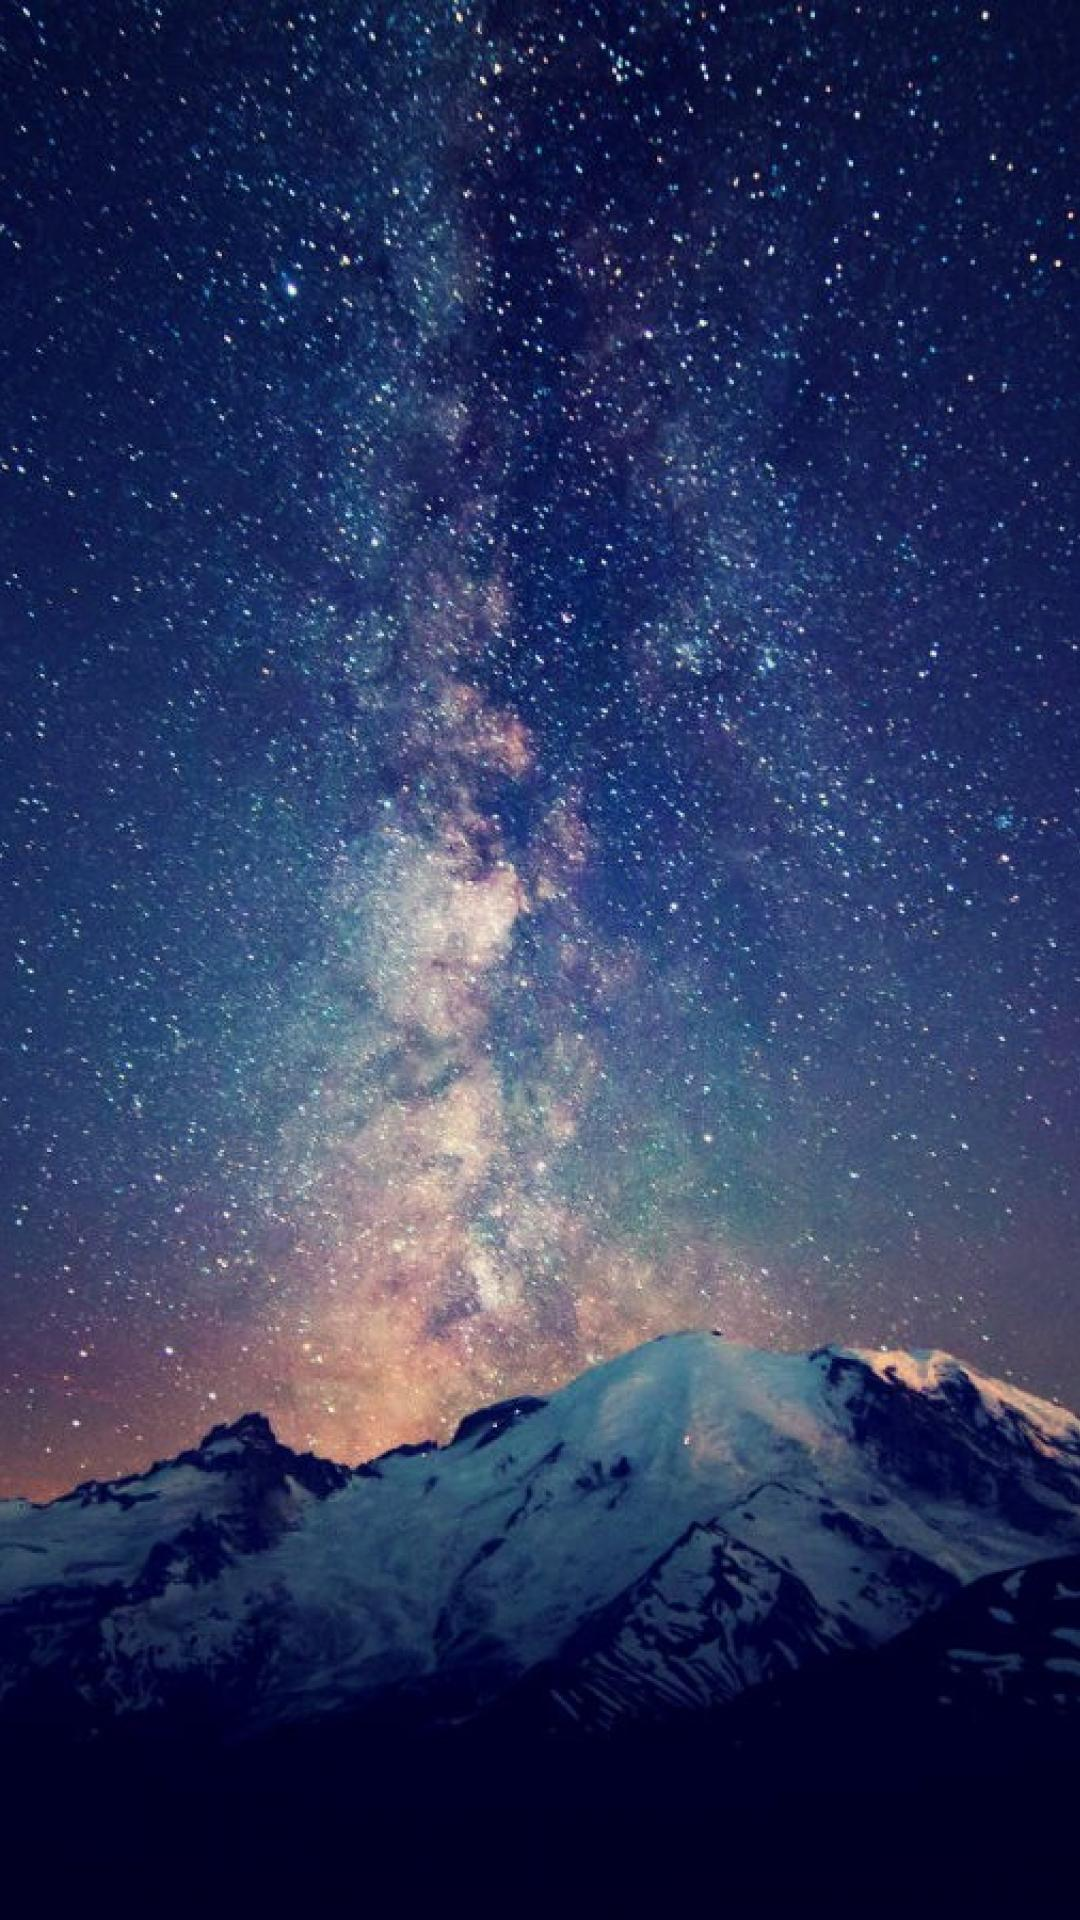 hd milky way galaxy wallpaper - wallpapersafari